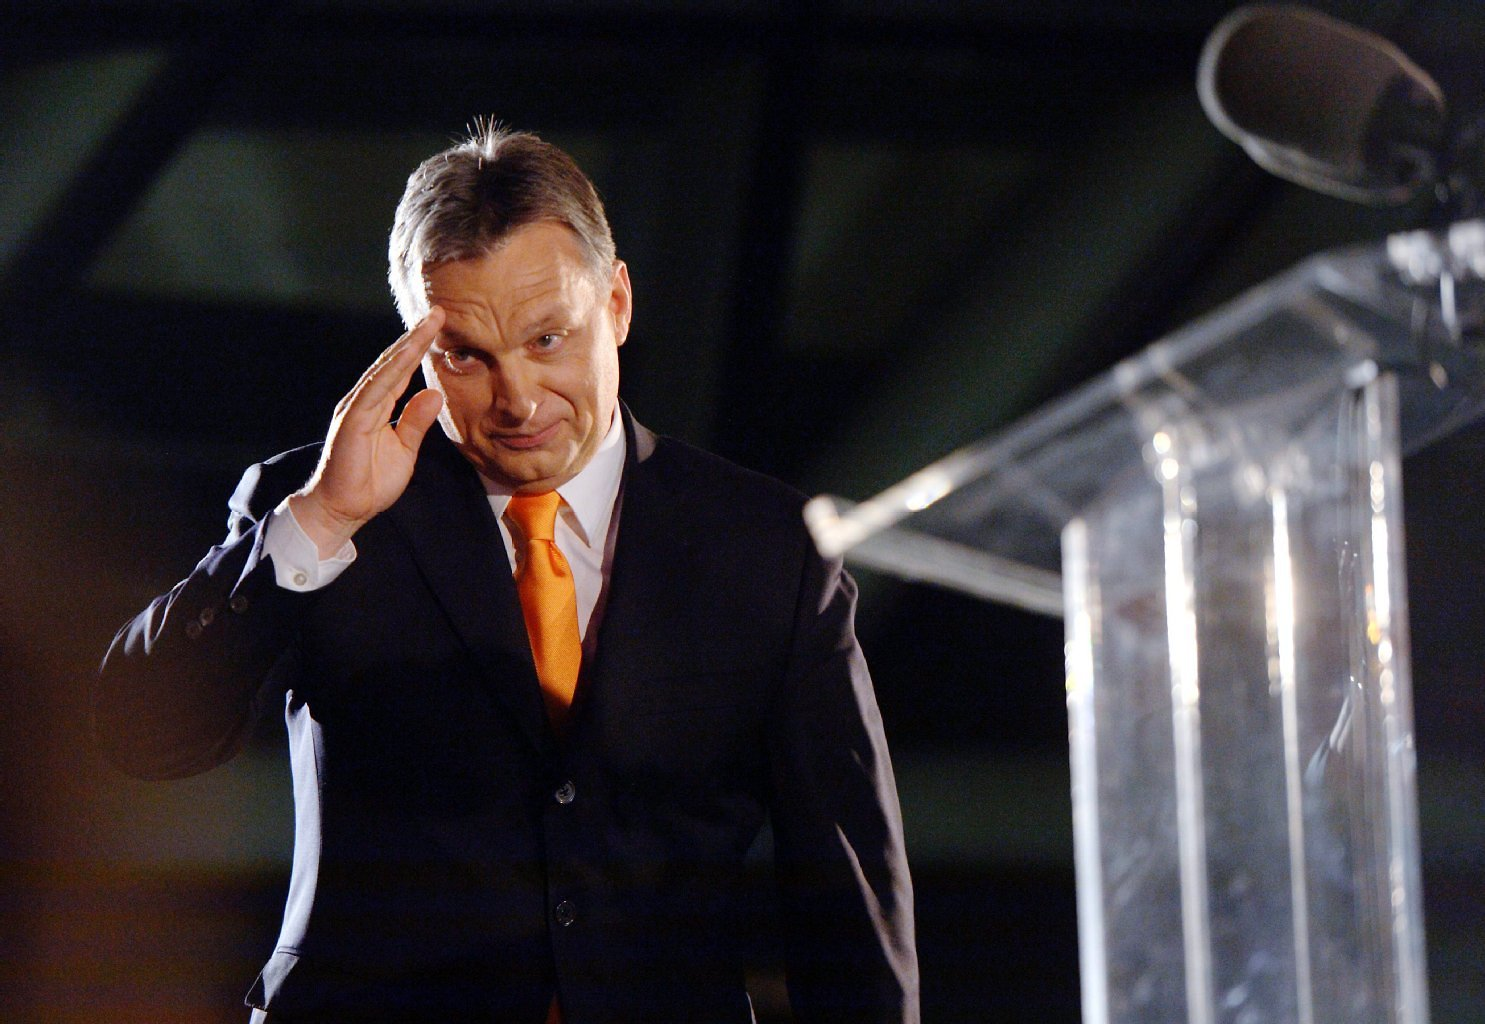 PM Orbán Victoriously Scores Big Win